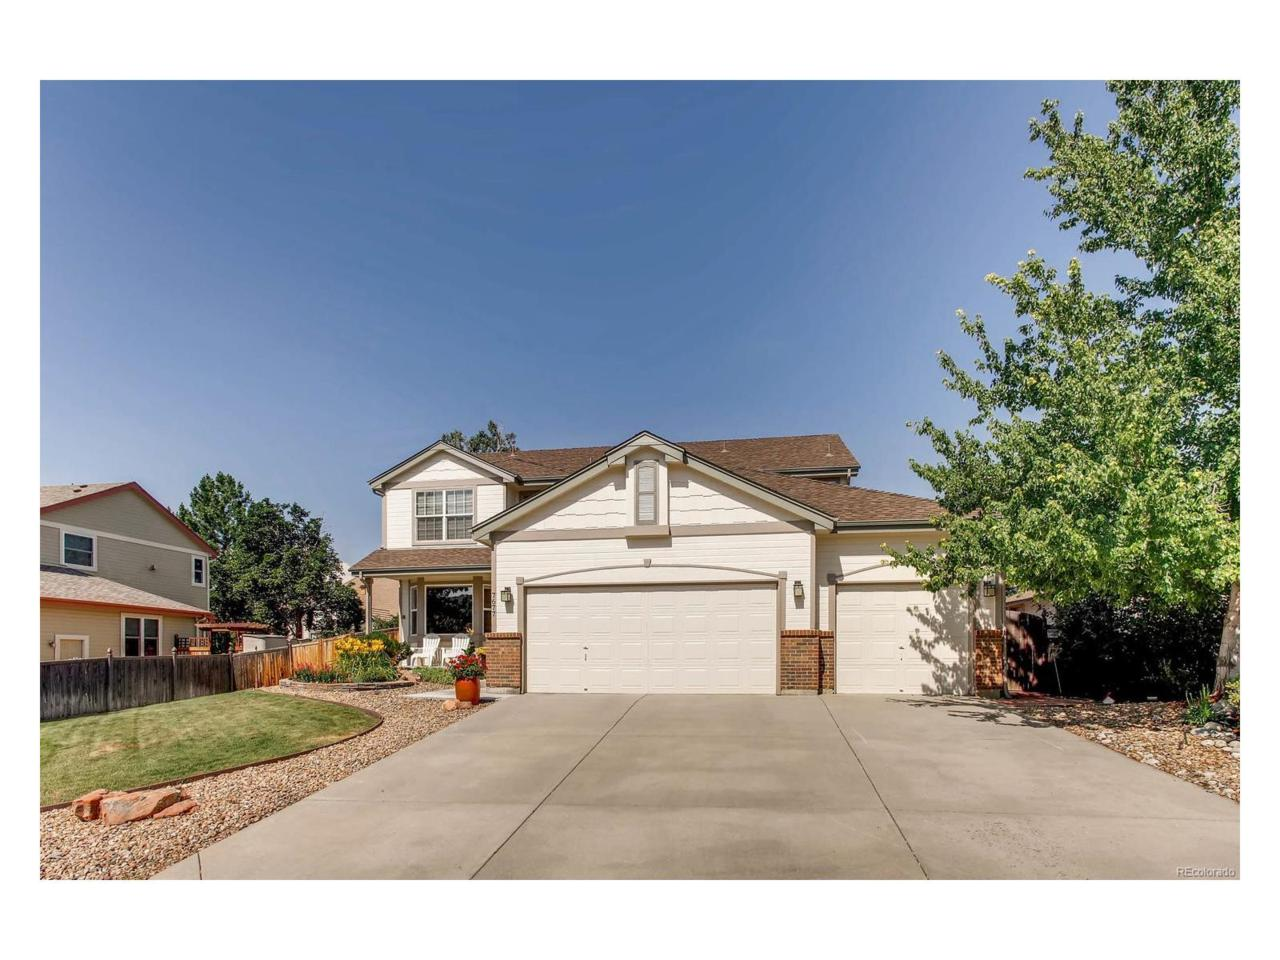 7677 S Allison Court, Littleton, CO 80128 (MLS #1574018) :: 8z Real Estate